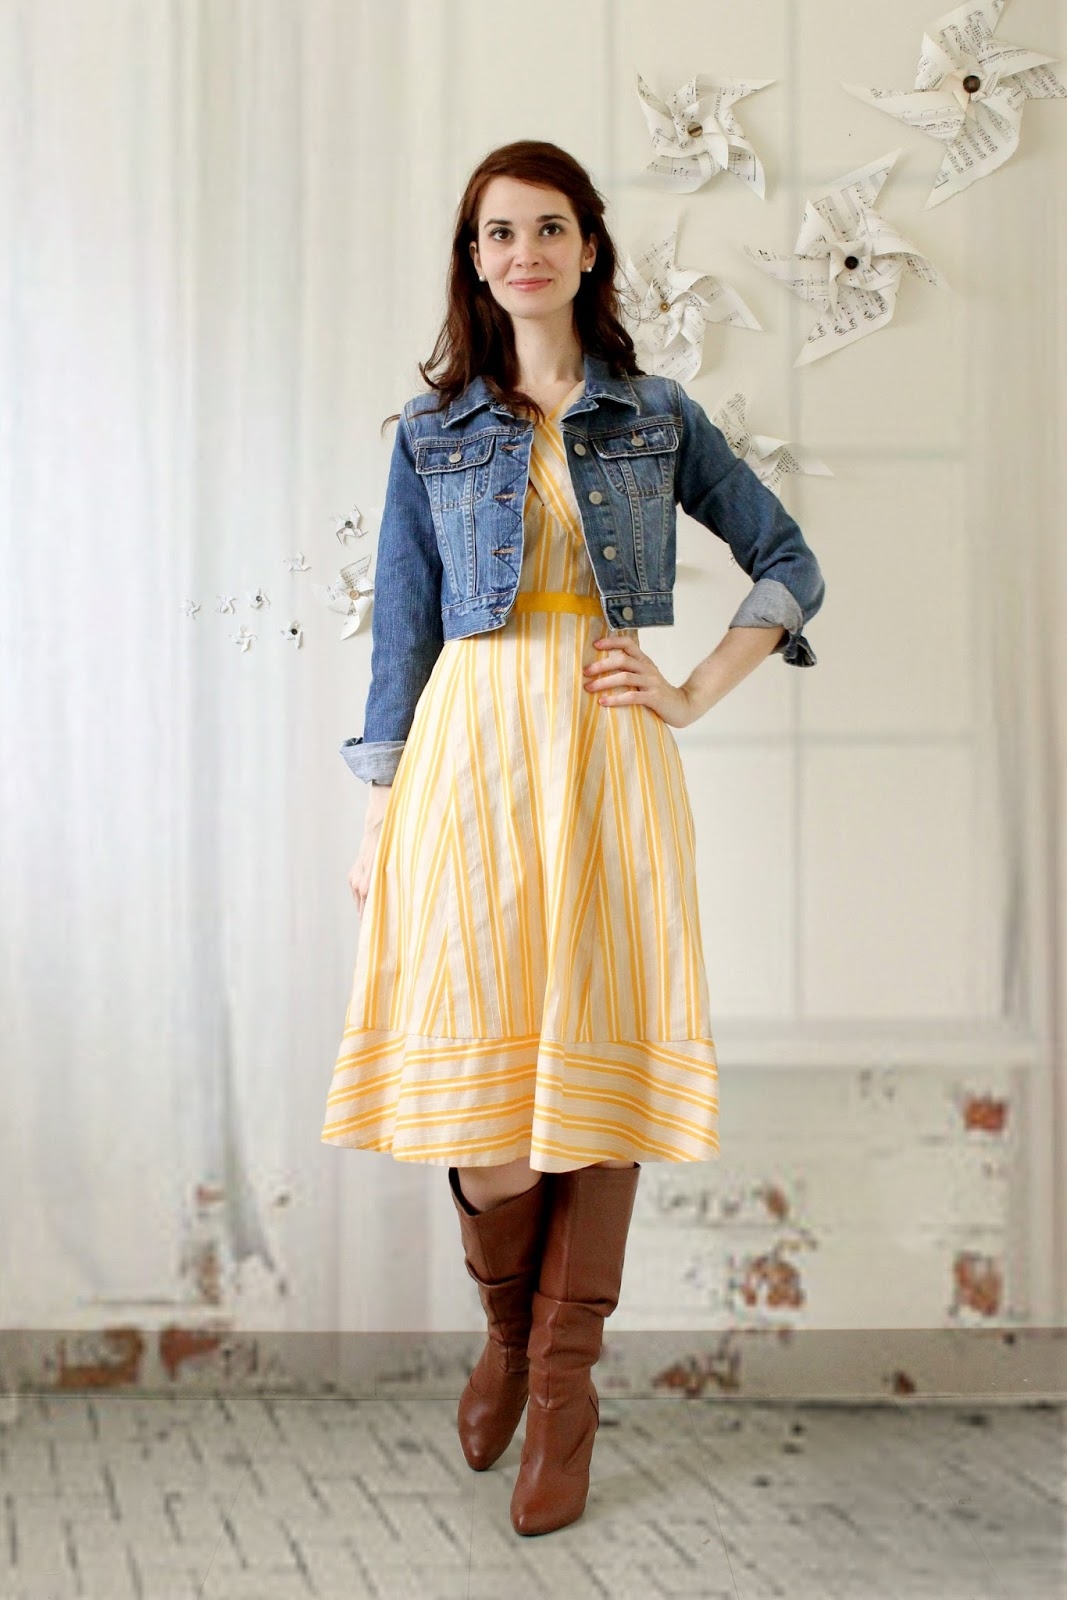 d7fee1ec6e Jacket is old and from Old Navy Boots are from ShoeDazzle. Dress is by  Anthropologie purchased from ThredUp. Use this link to save $20 off your  first ...